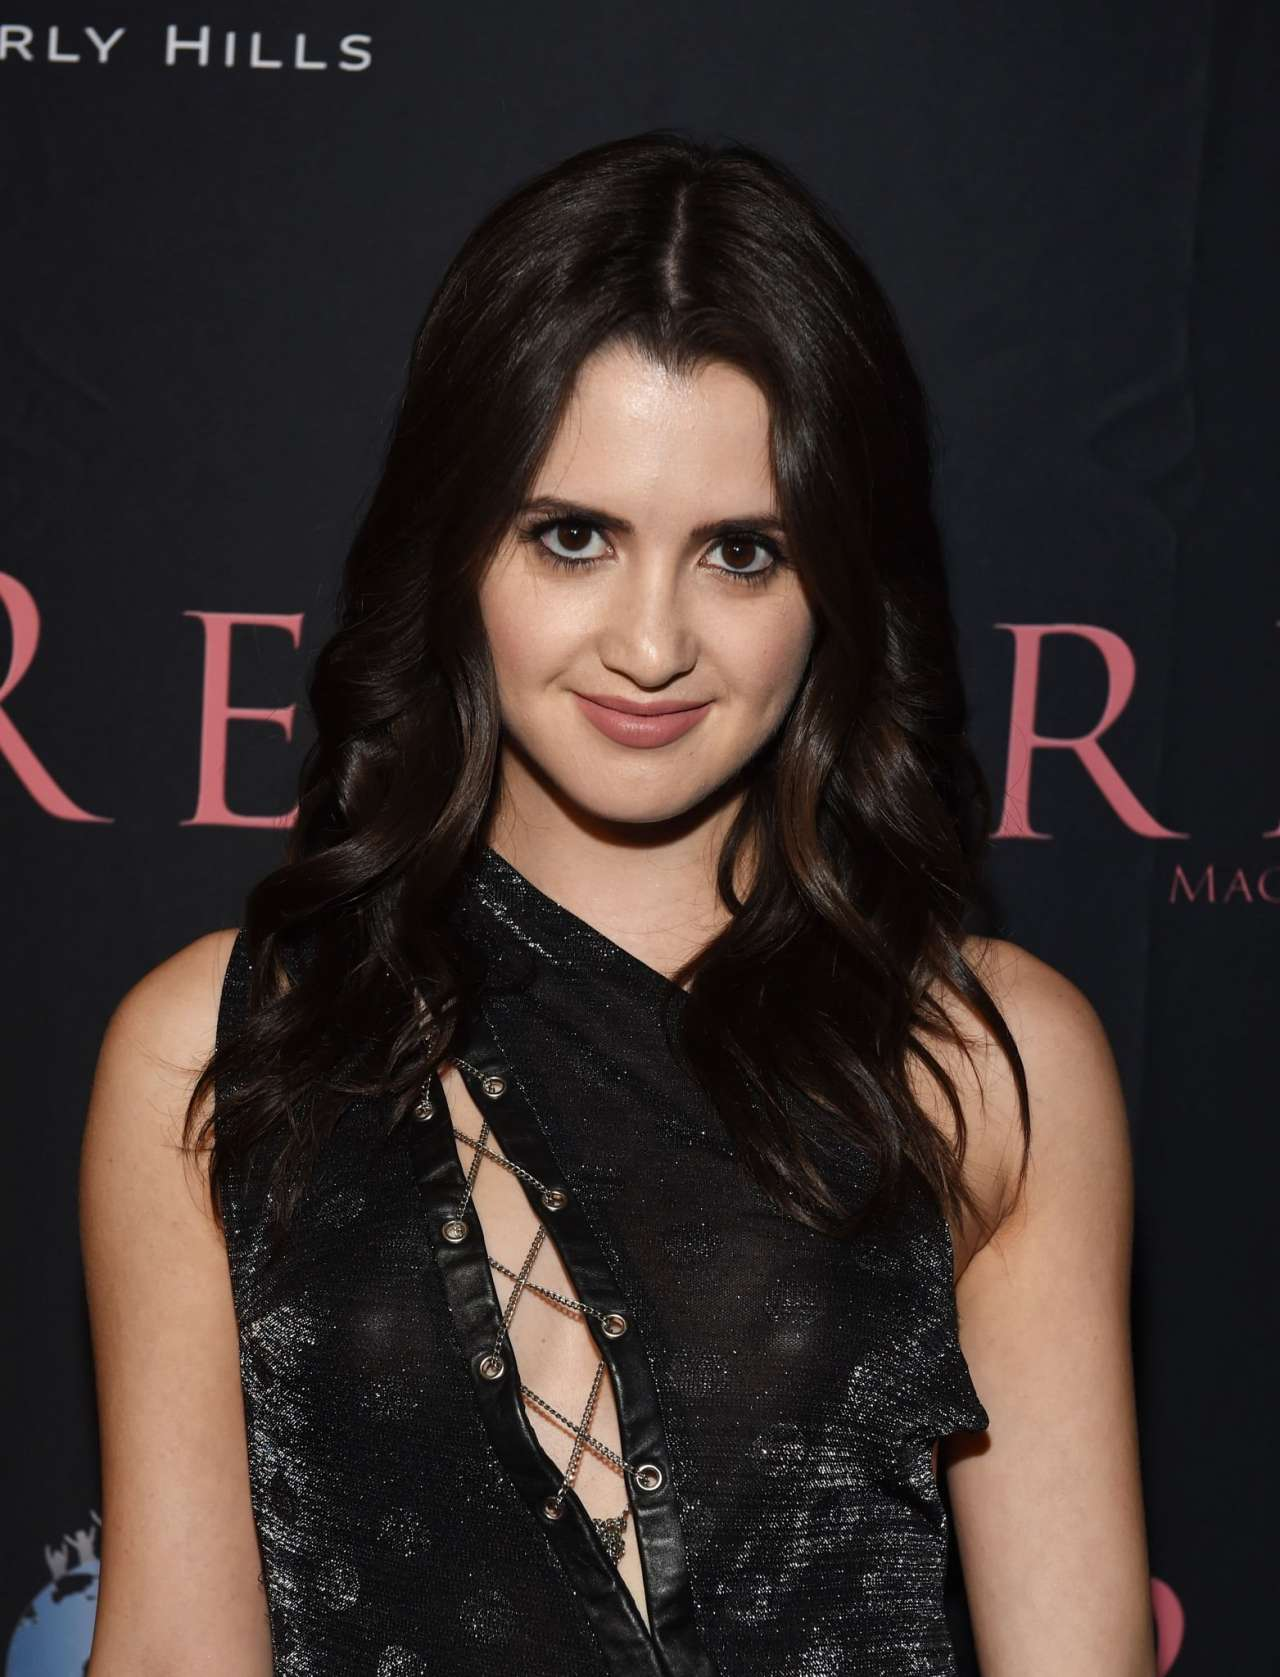 Laura Marano - Regard Magazine's 10 Year Anniversary celebration in Los Angeles